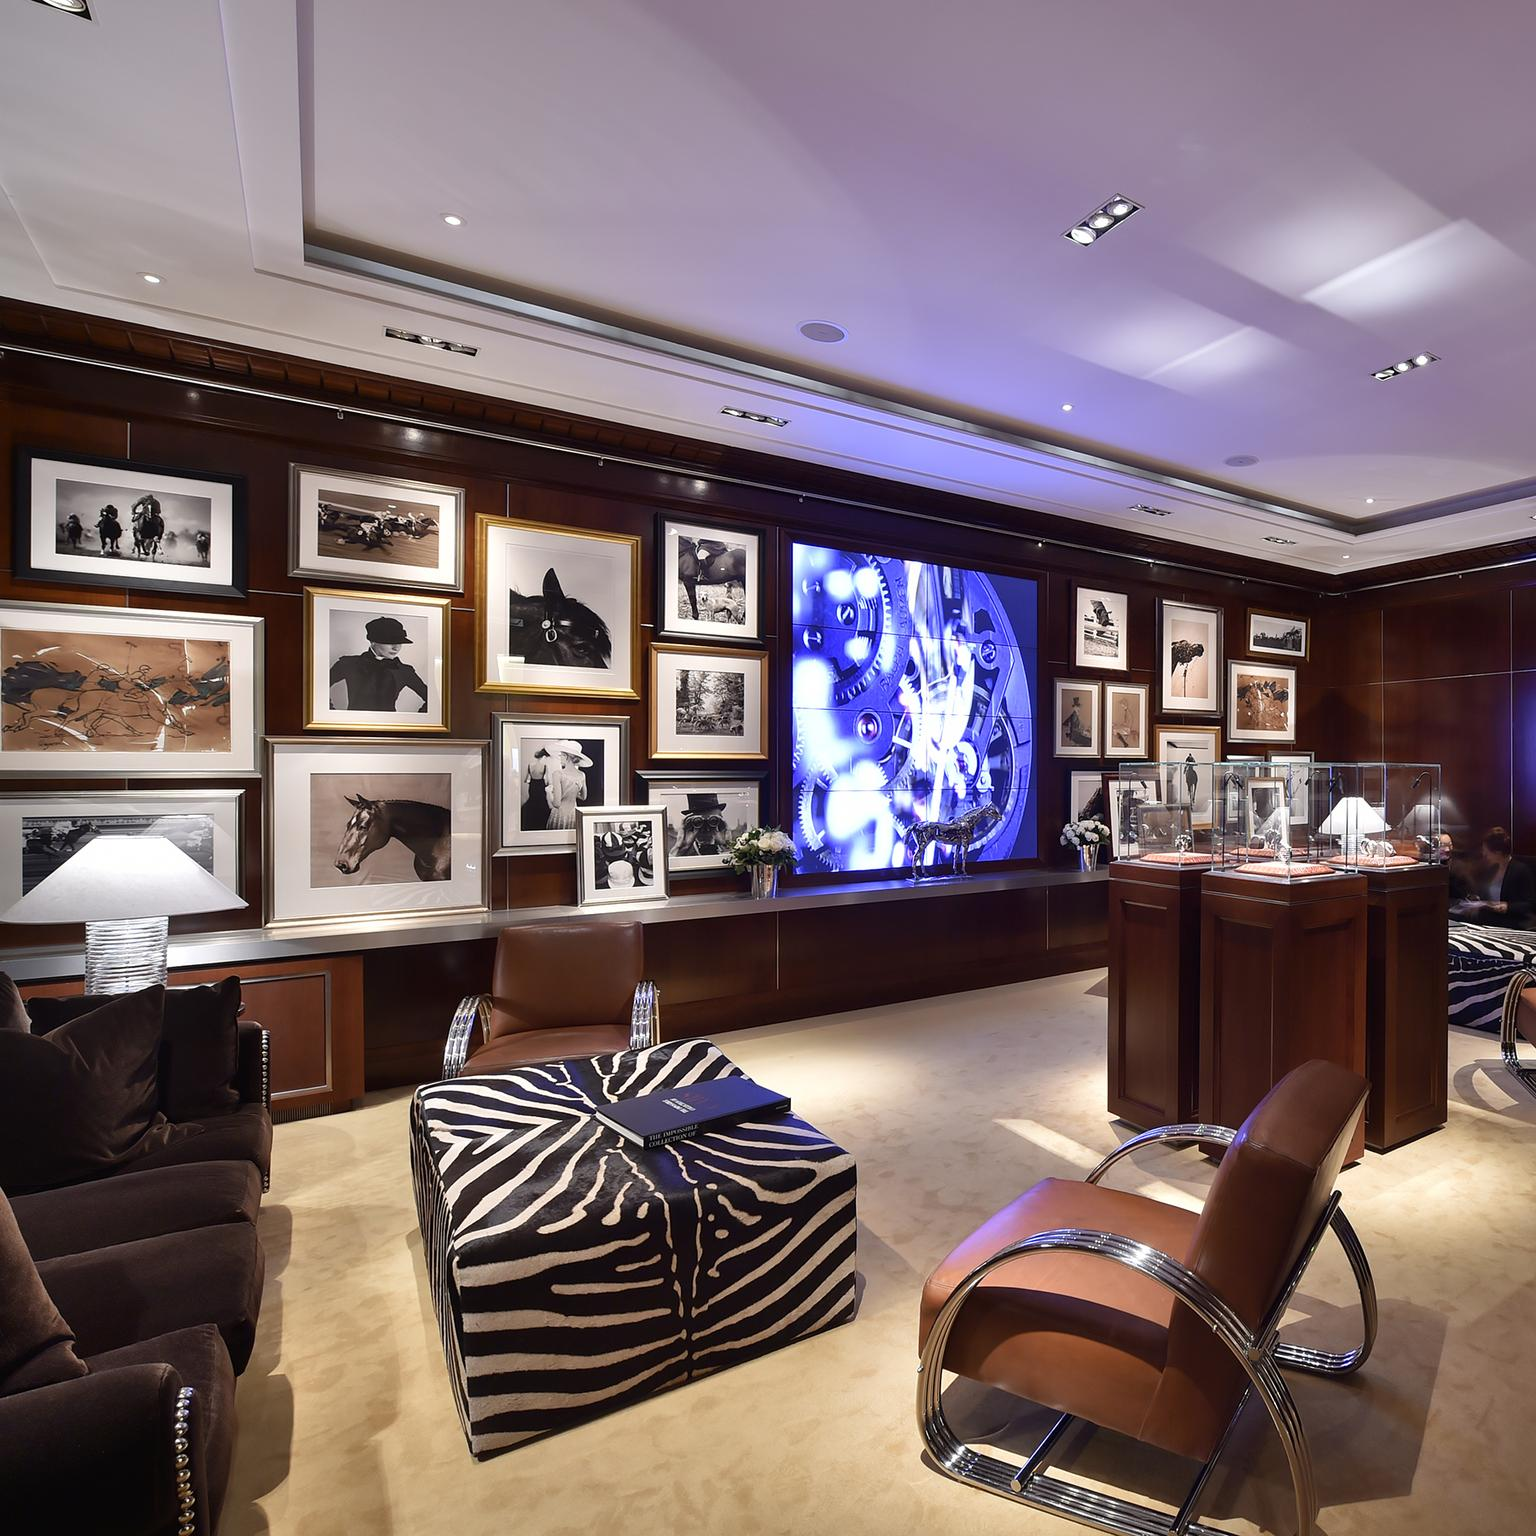 Ralph Lauren at the SIHH 2015